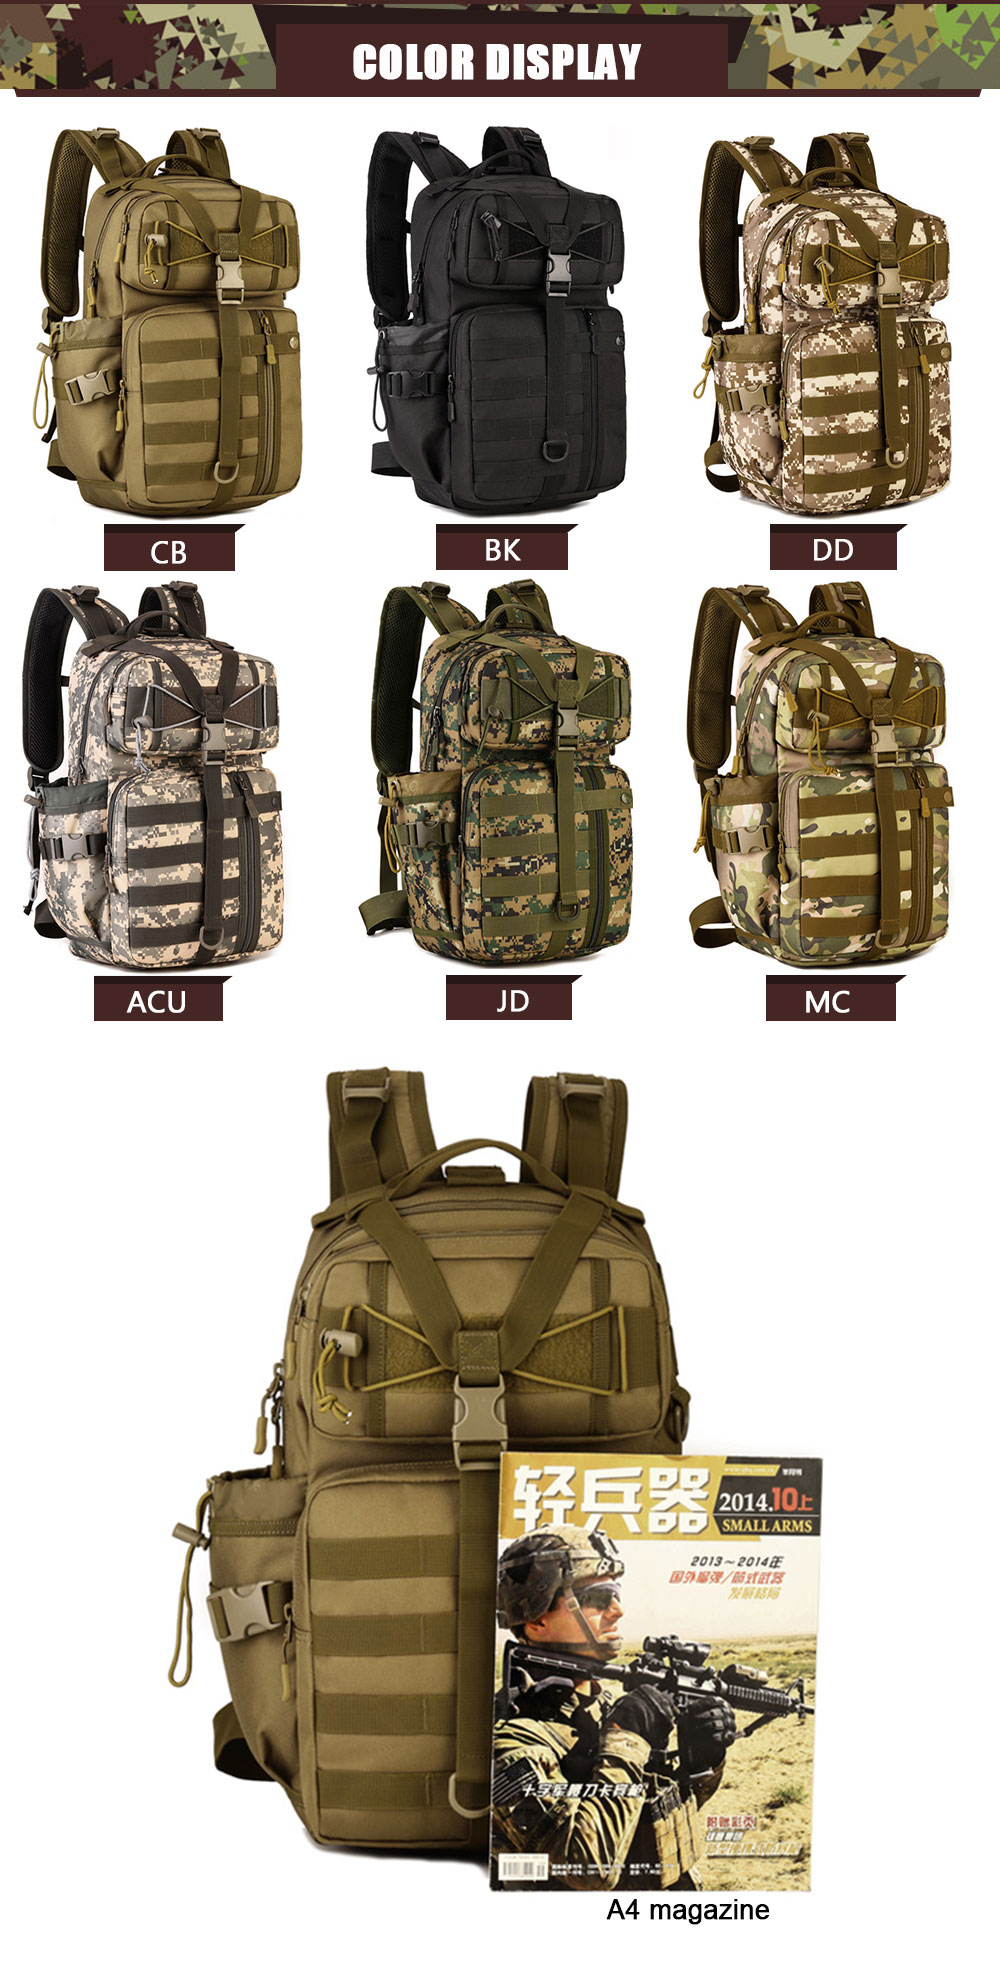 HTB11RniQFXXXXXZaXXXq6xXFXXX5 - SINAIRSOFT Outdoor Tactical Backpack 900D Waterproof Army Shoulder Military hunting camping Multi-purpose Molle Sport Bag LY0057